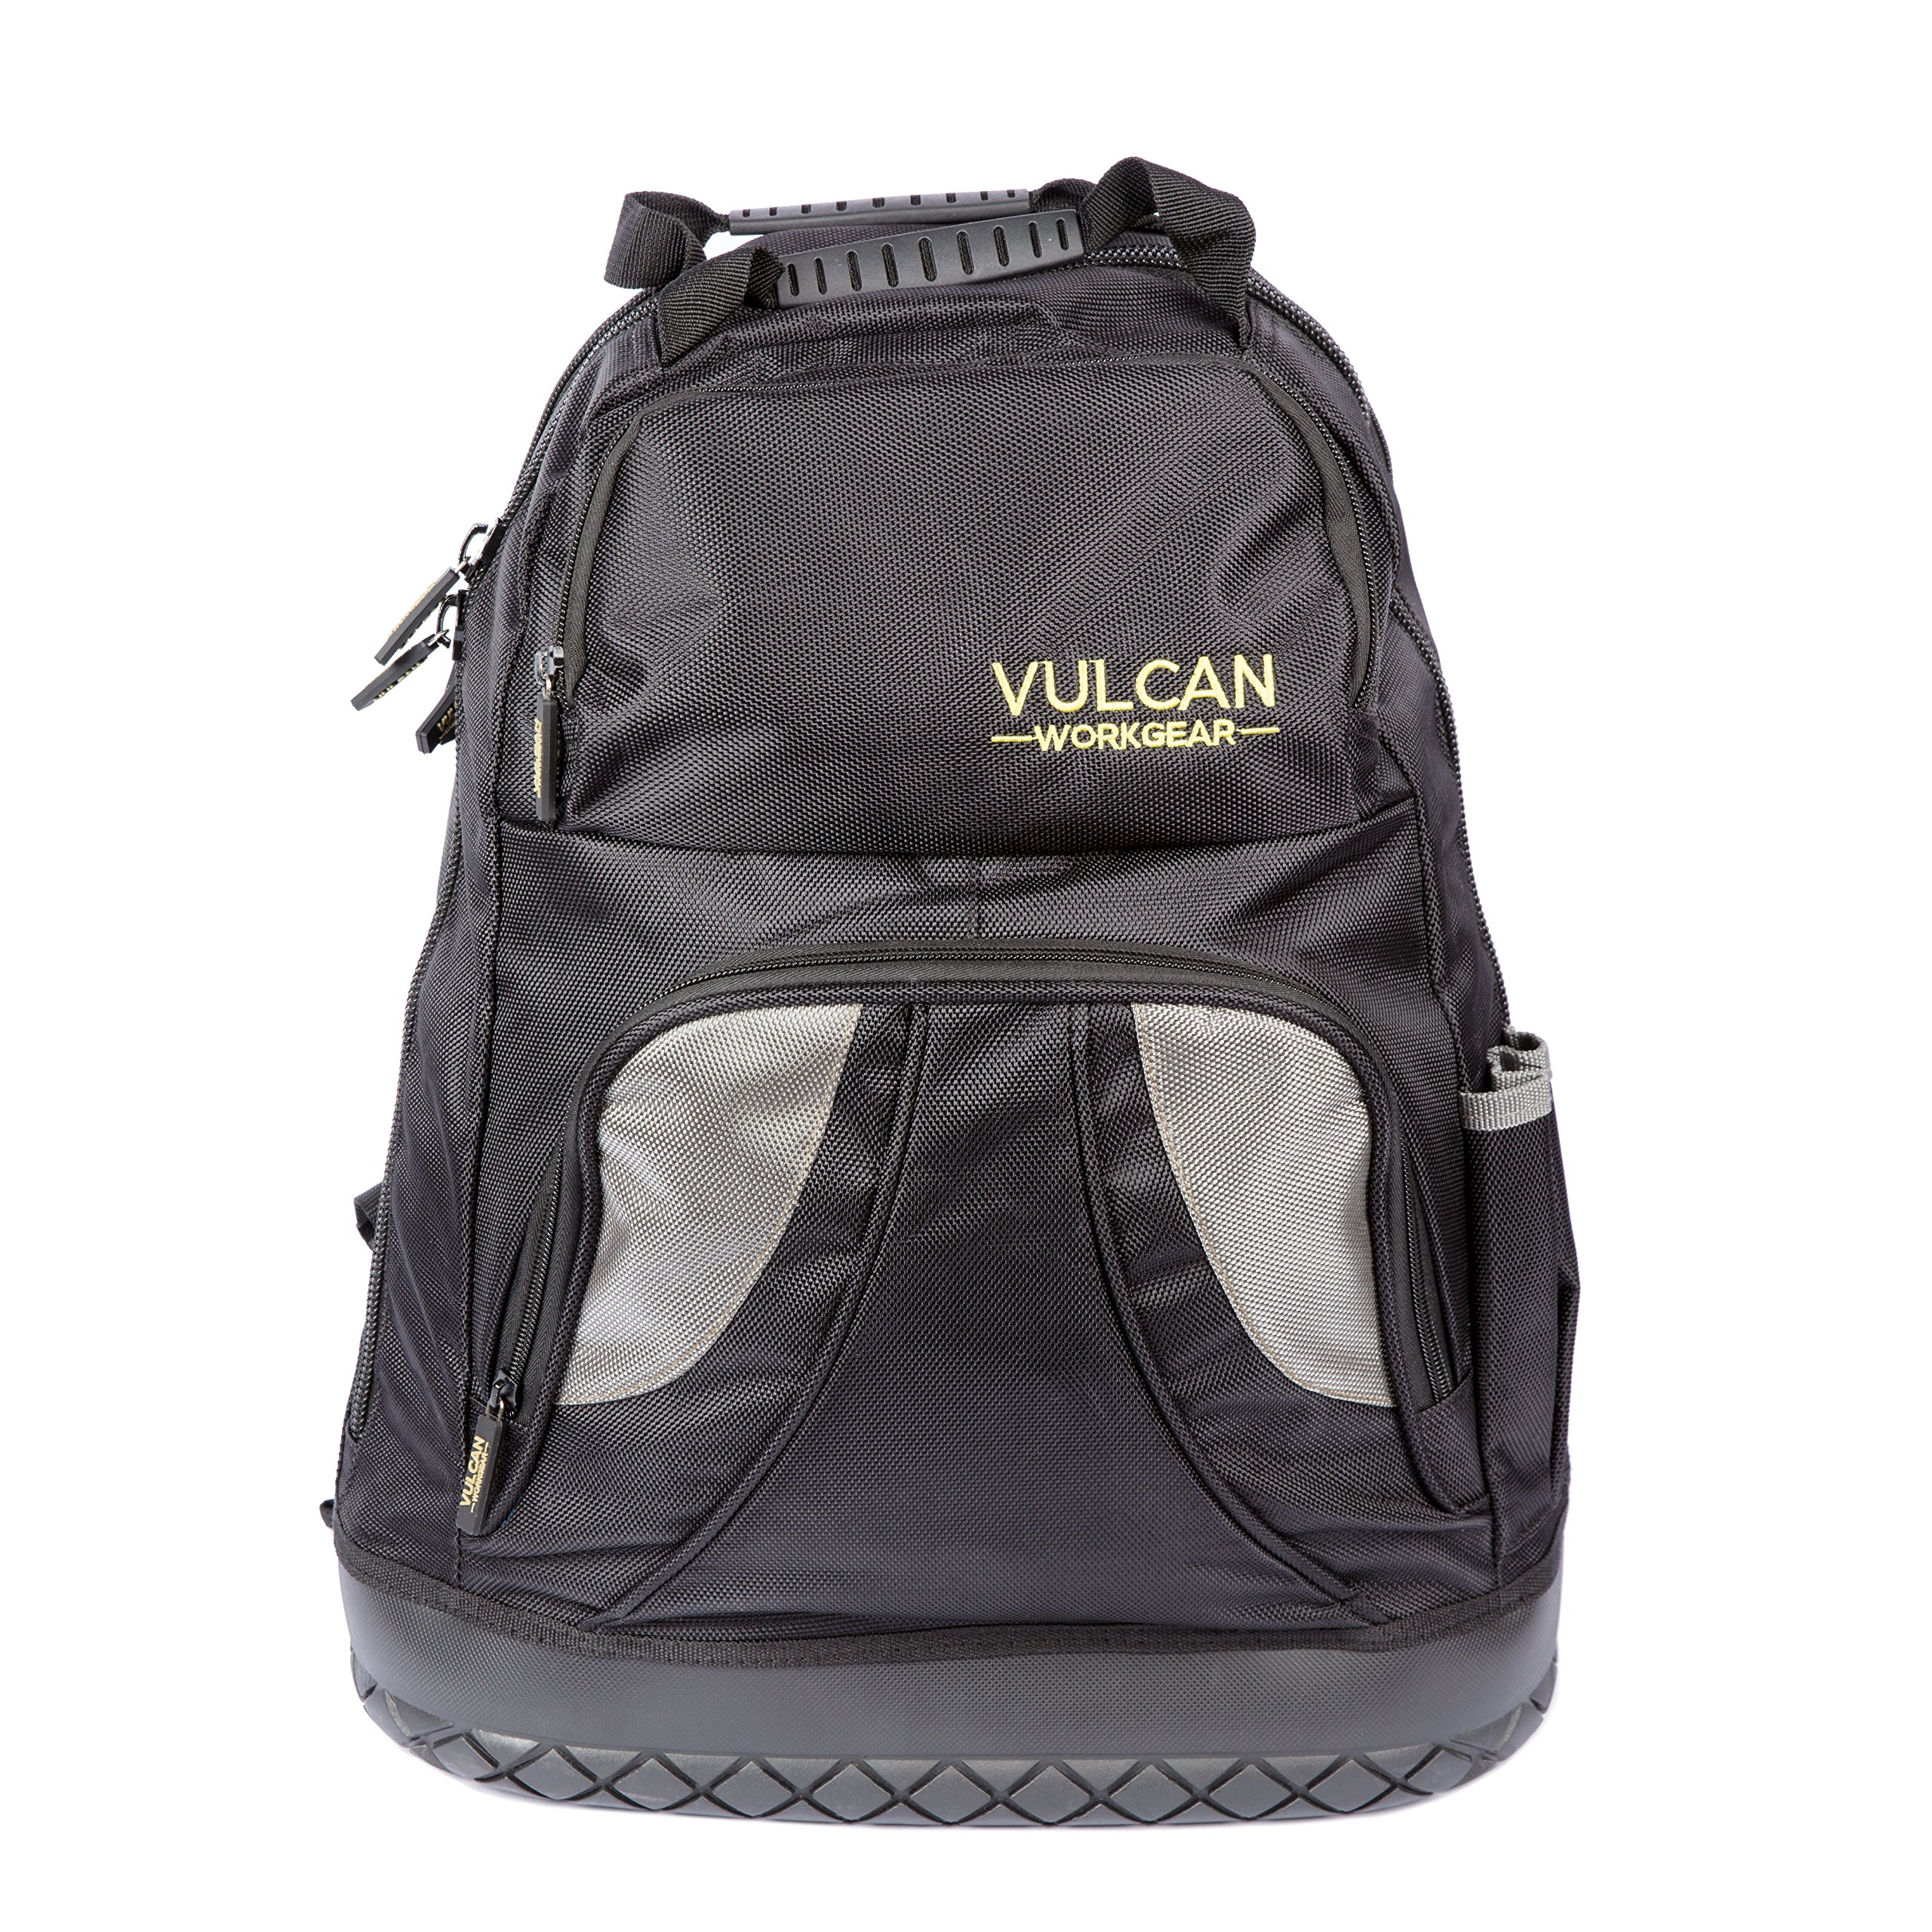 Vulcan Workgear Tool Backpack Tool Bag with Over 24 Reinforced Pockets For All Your Tools & Laptop Compartment - Reinforced Heavy Duty Toolbox/ Tote Bag For Contractors, HVAC, Technicians, Jobsite